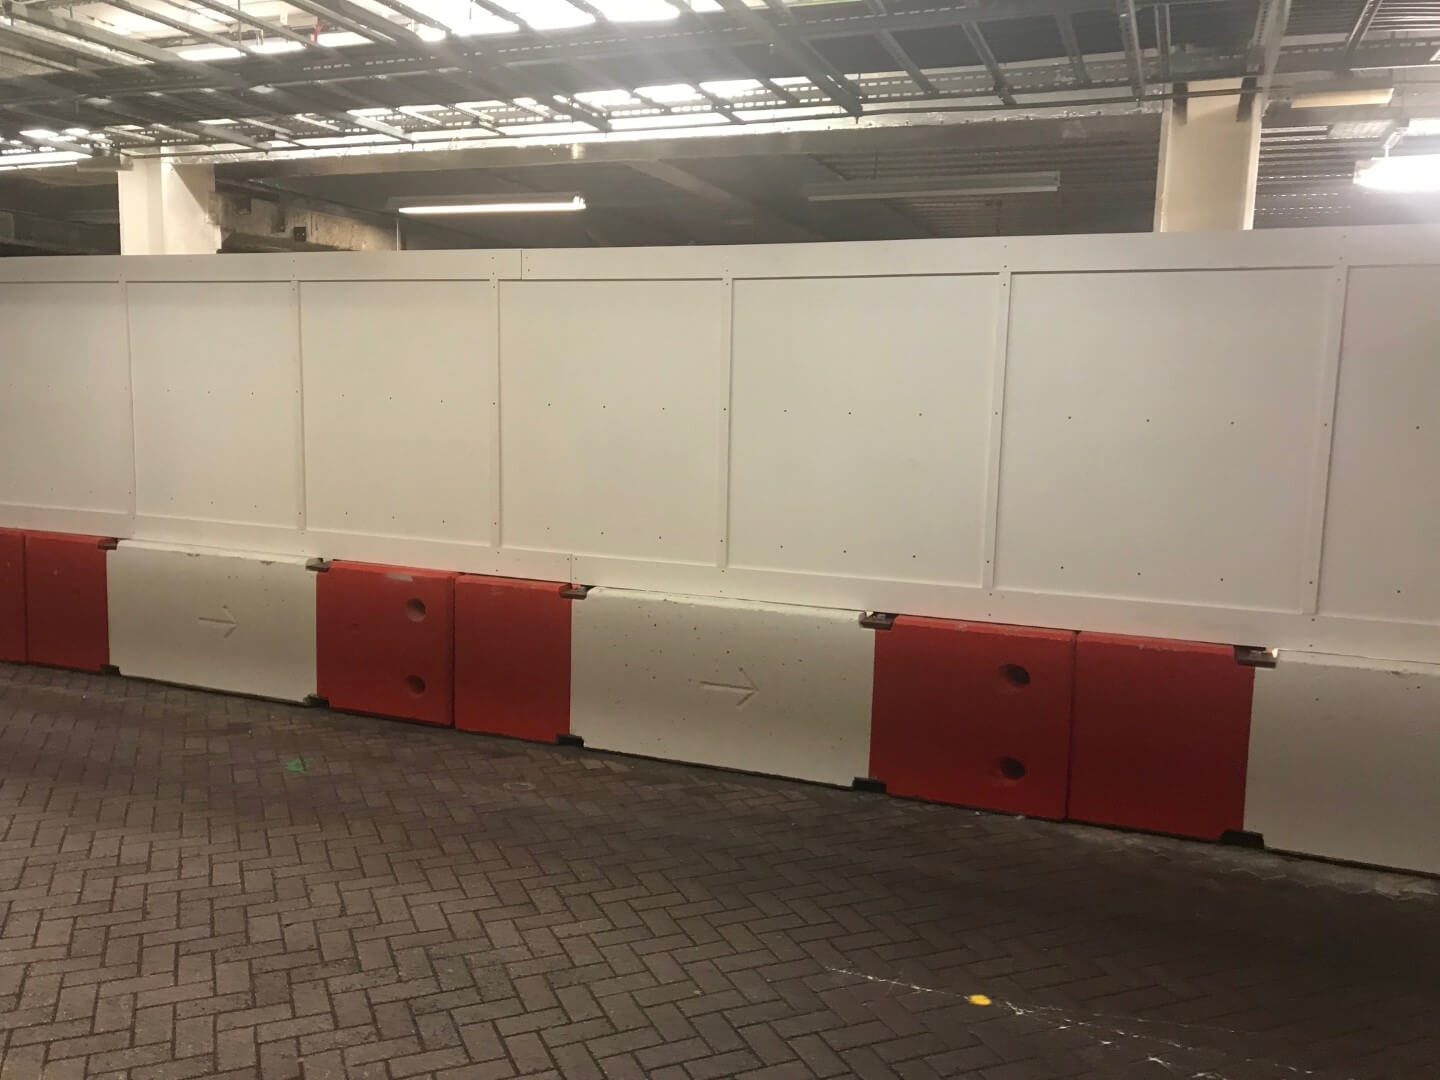 Hoarding used at Airport